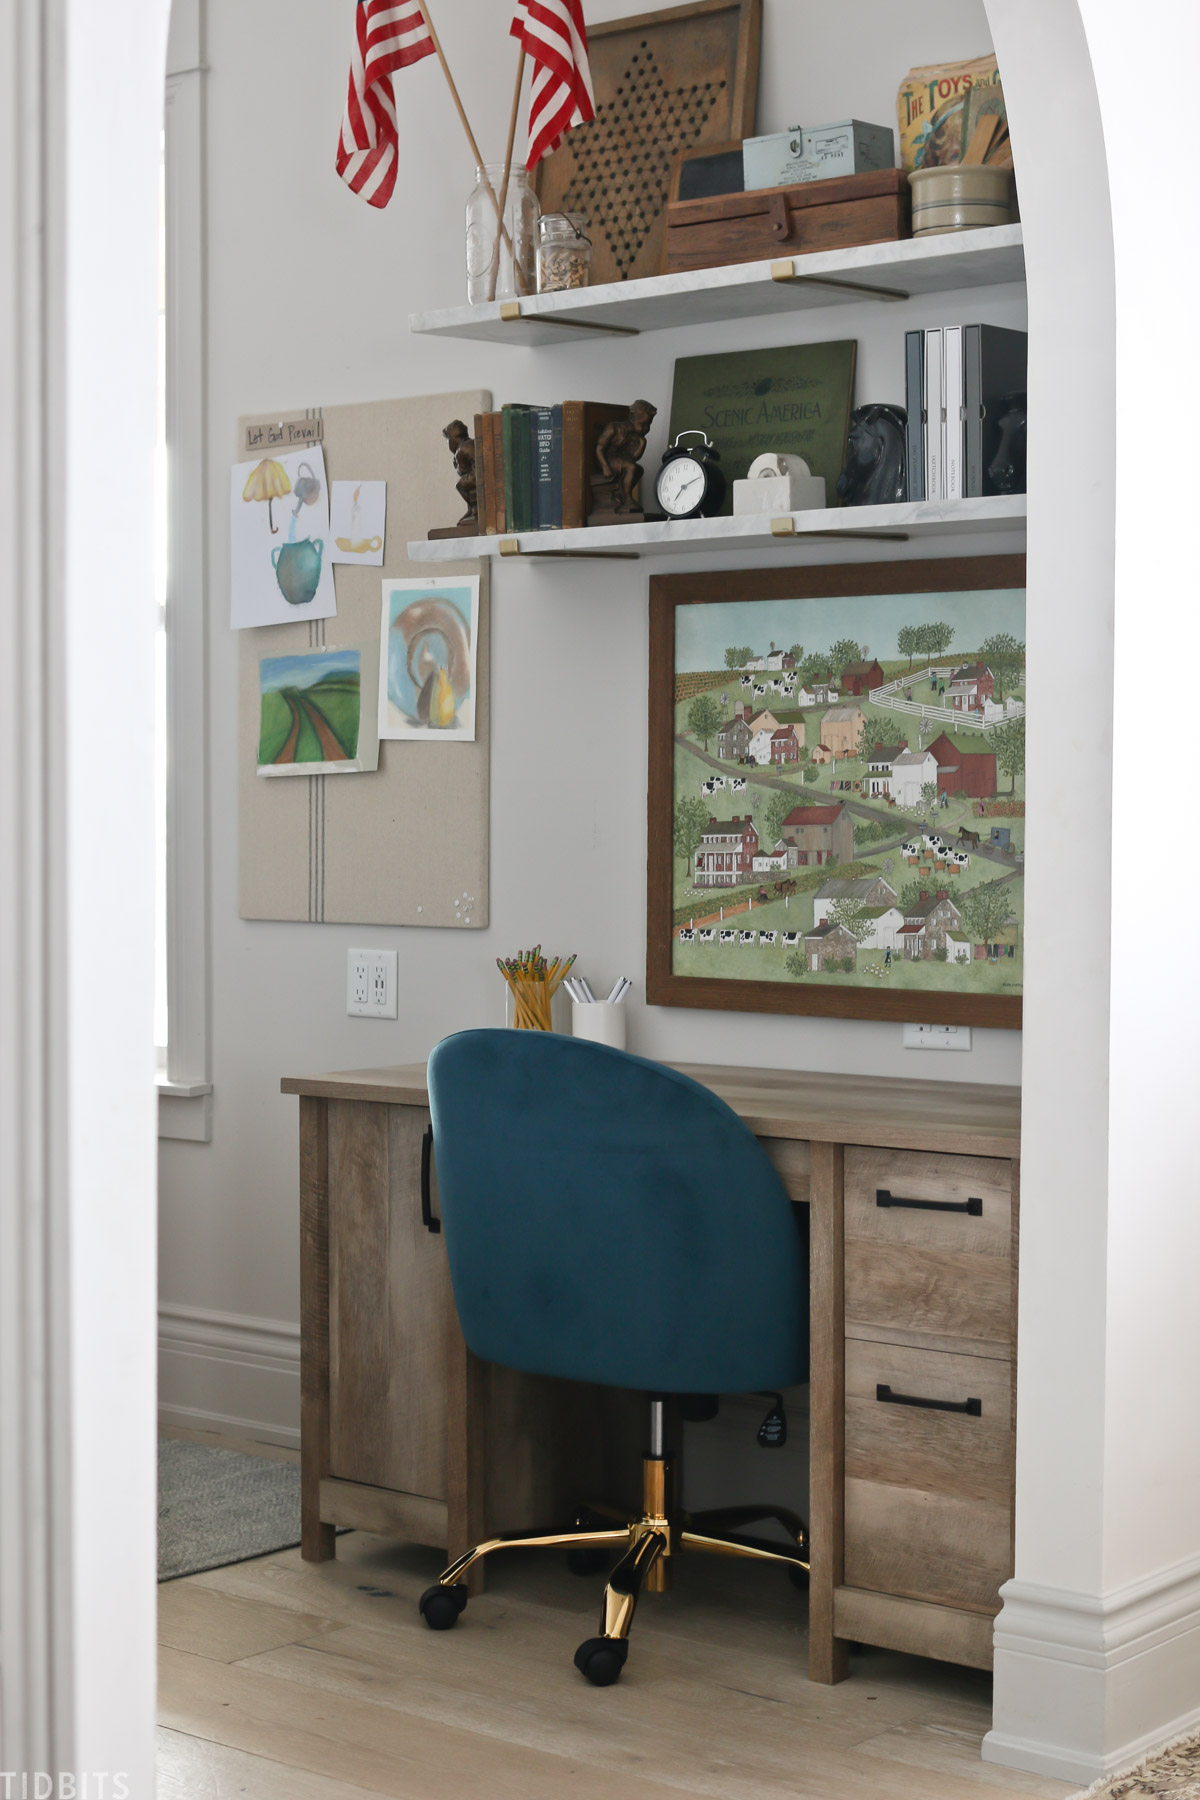 blue chair and desk in a homeschool room with floating shelves installed above it